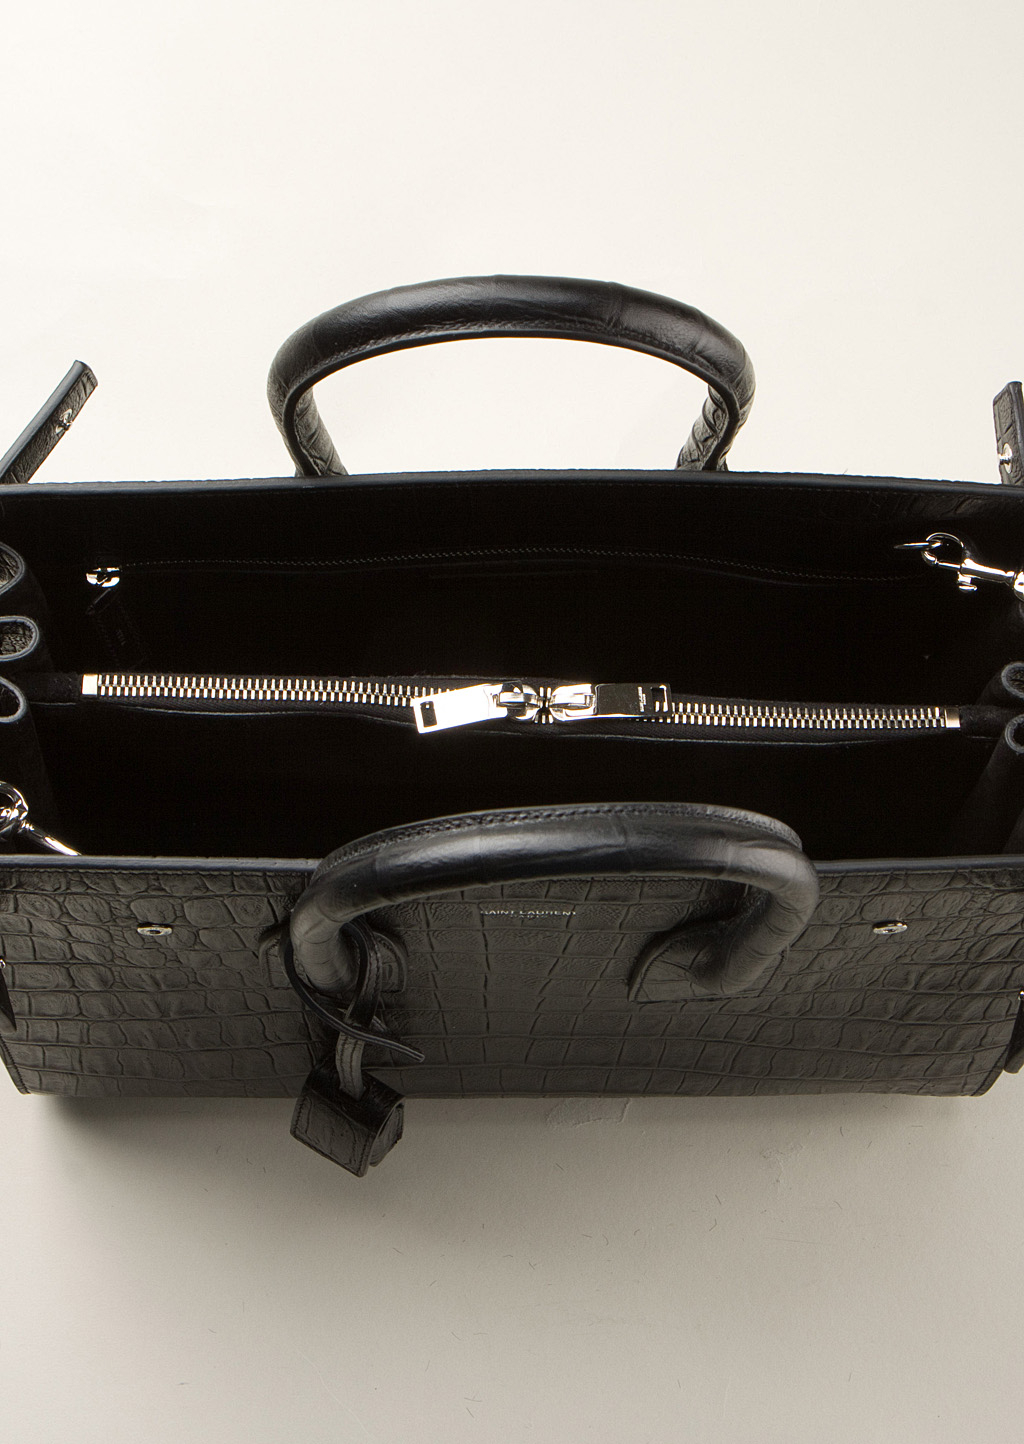 ysl duffle bag price - classic small sac de jour bag in black suede and leather